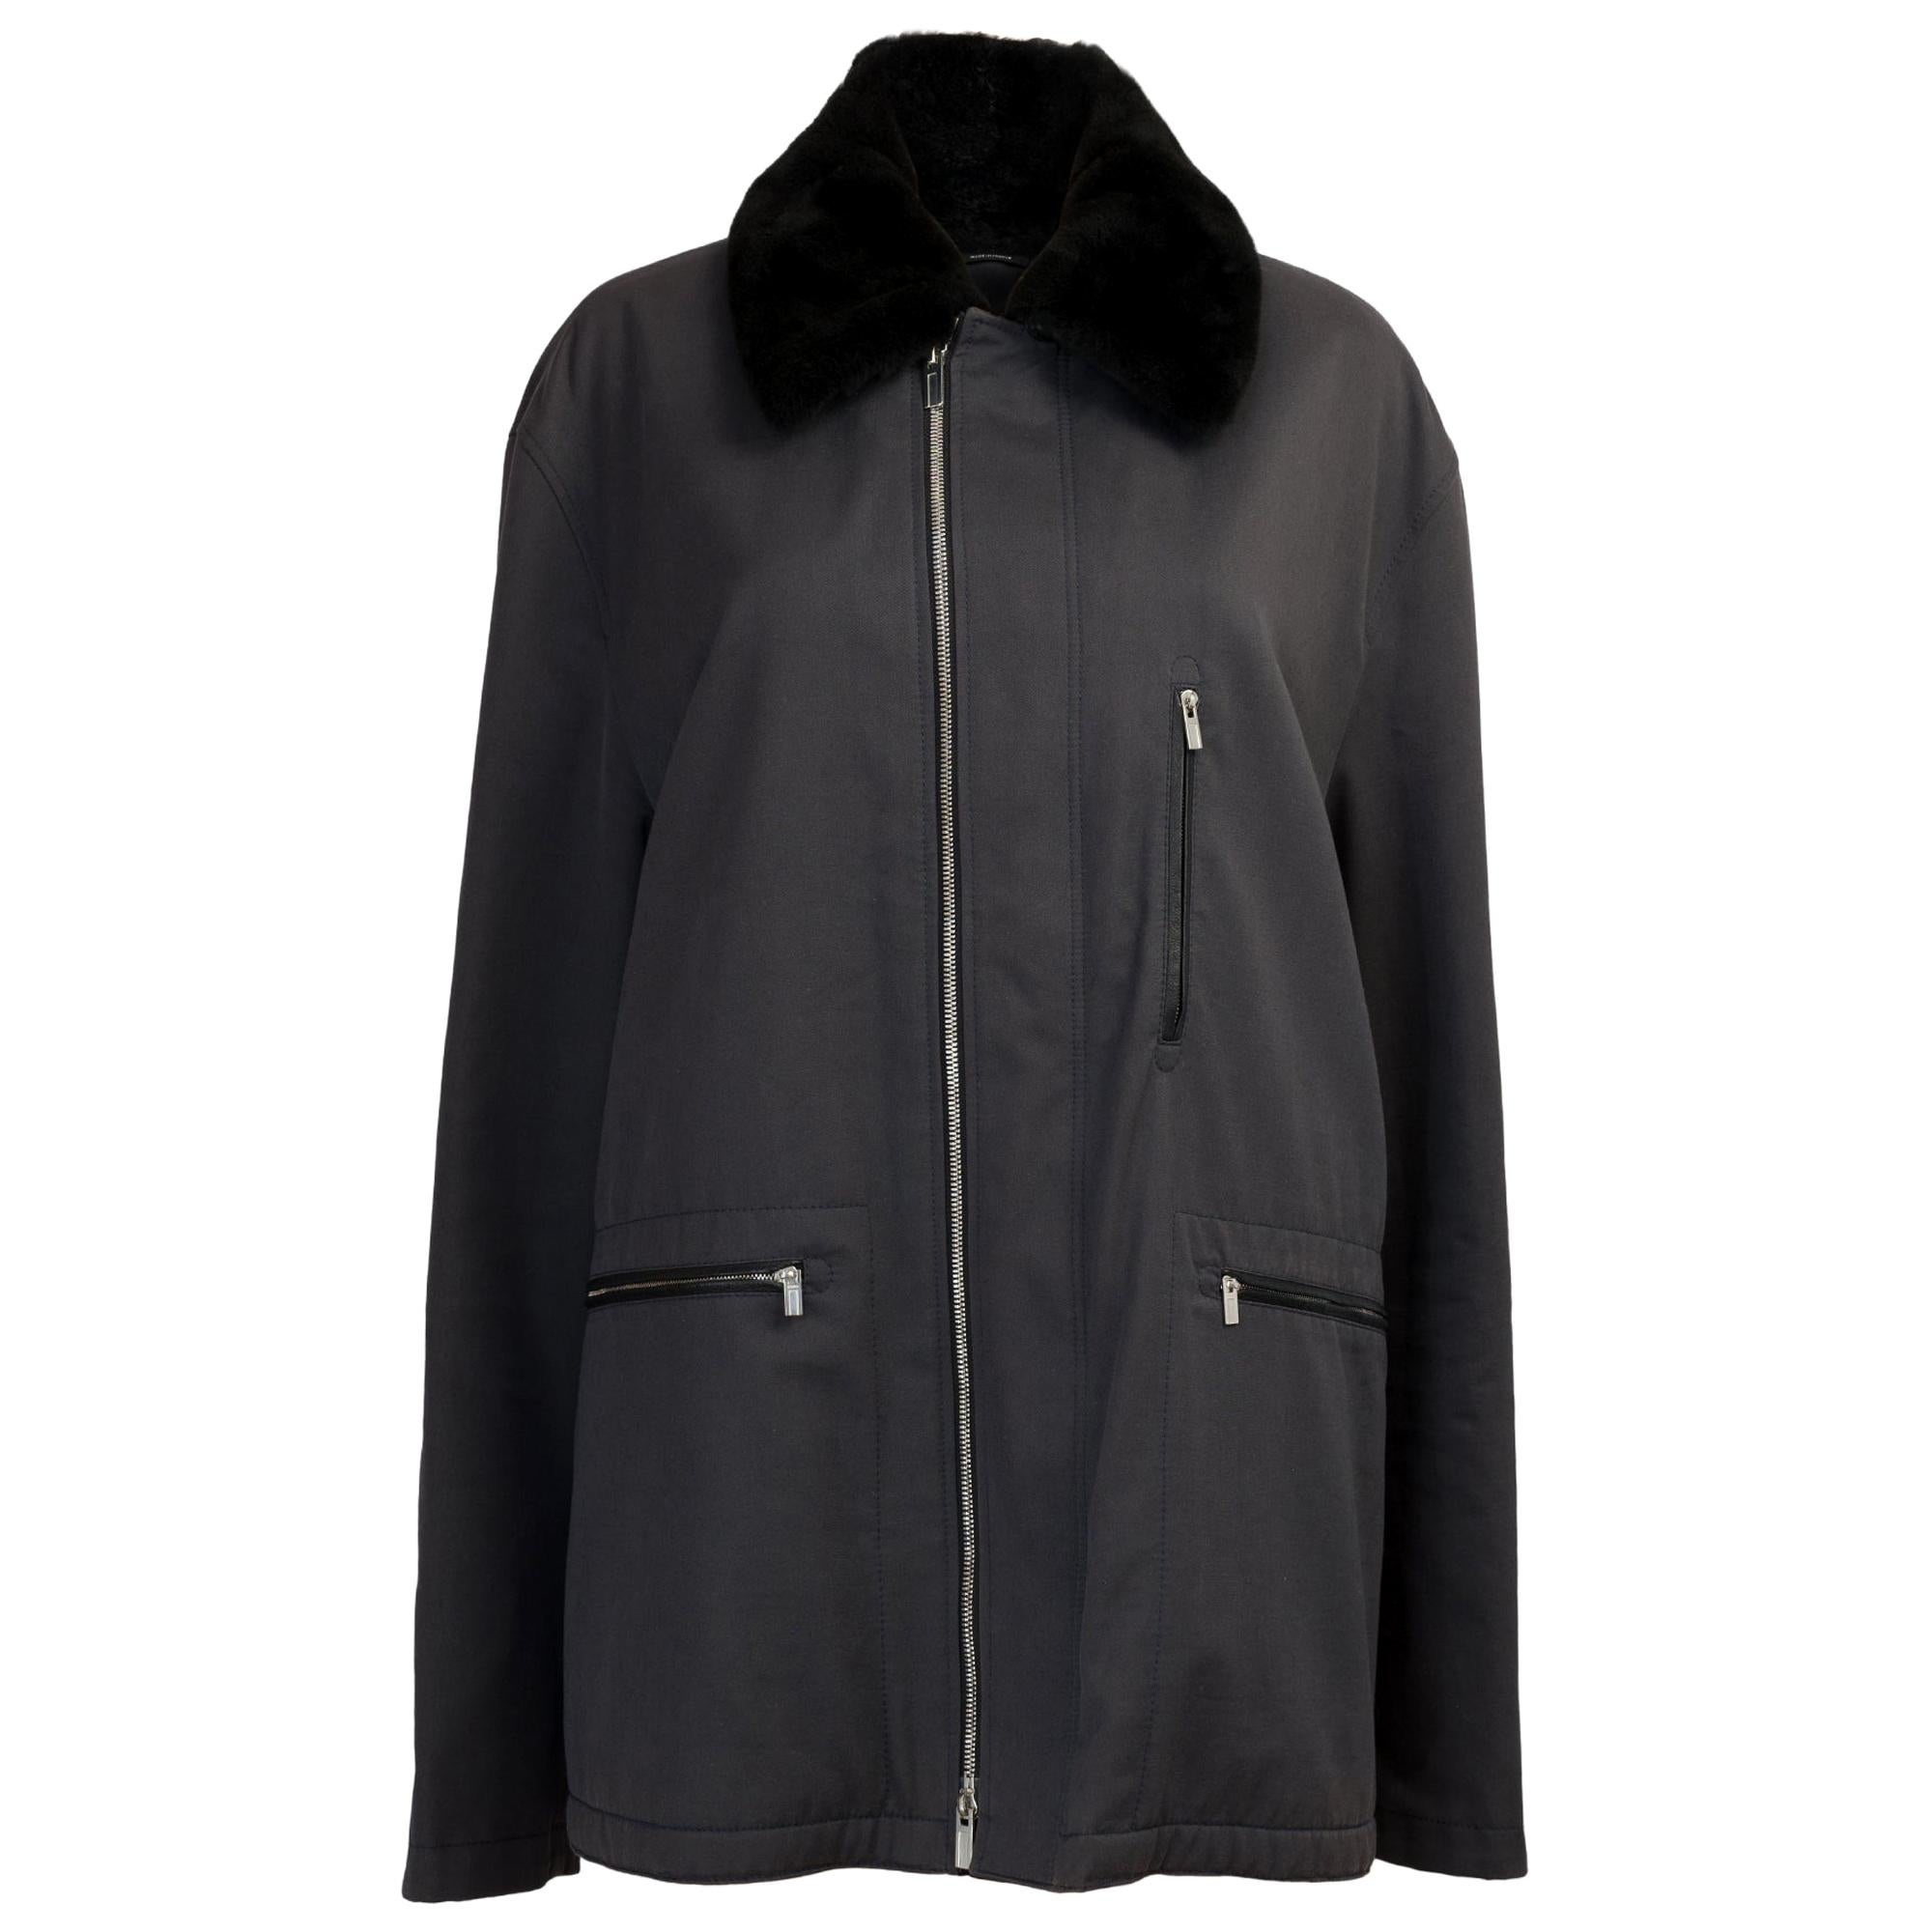 BRAND NEW/ Hermès Man Jacket in black canvas and leather, silver hardware